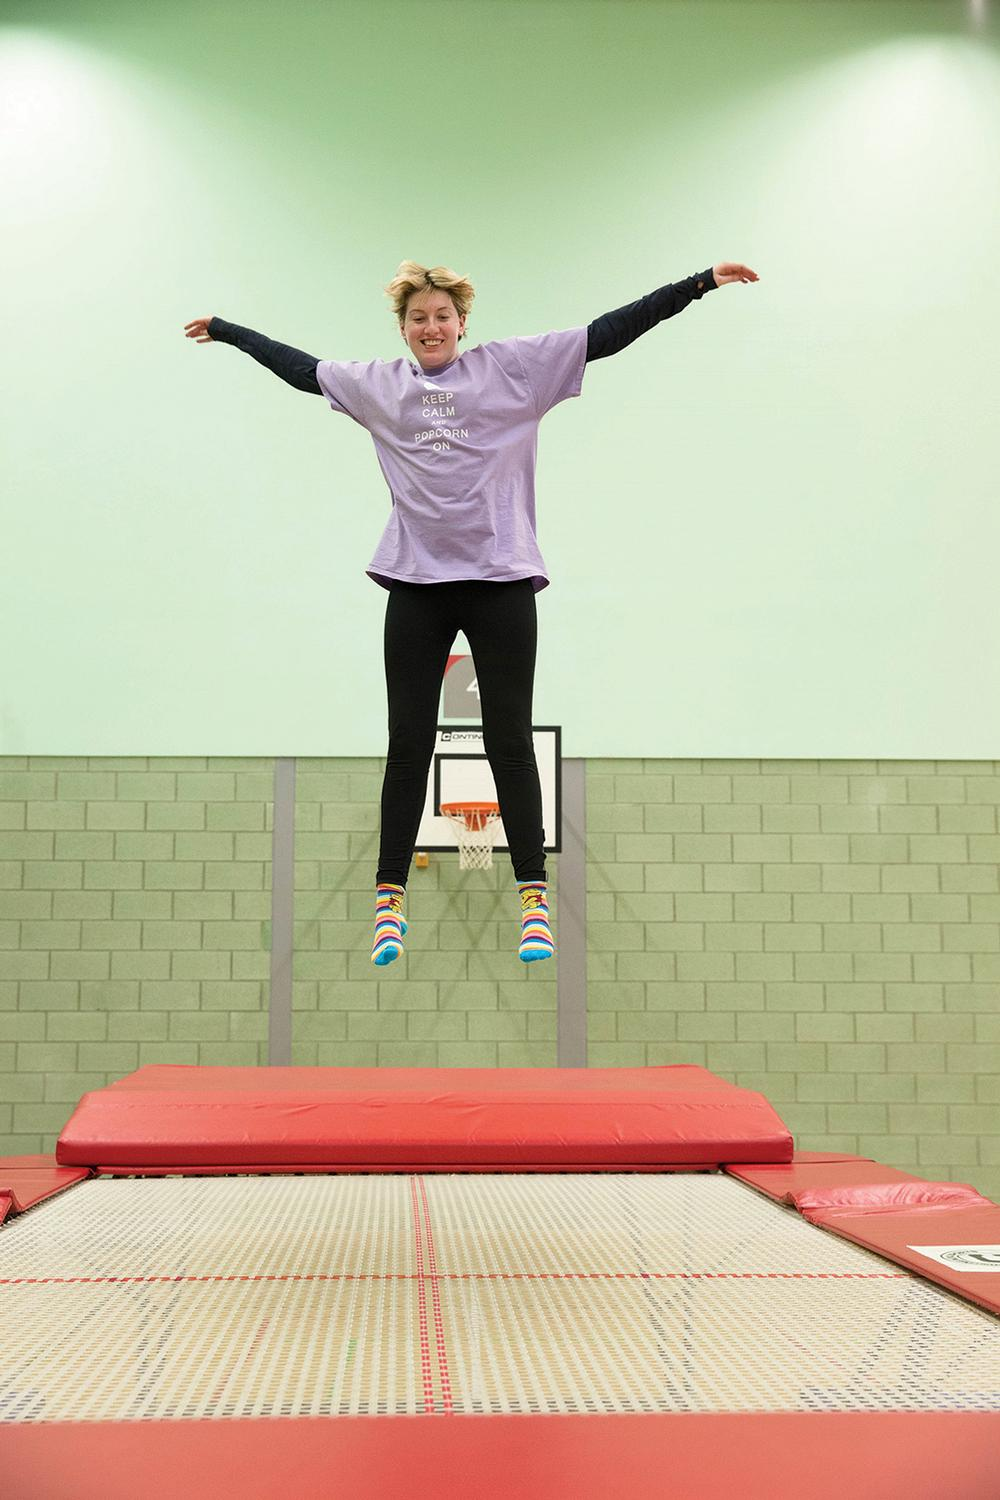 Sport for Confidence currently has 400 participants across five leisure centres